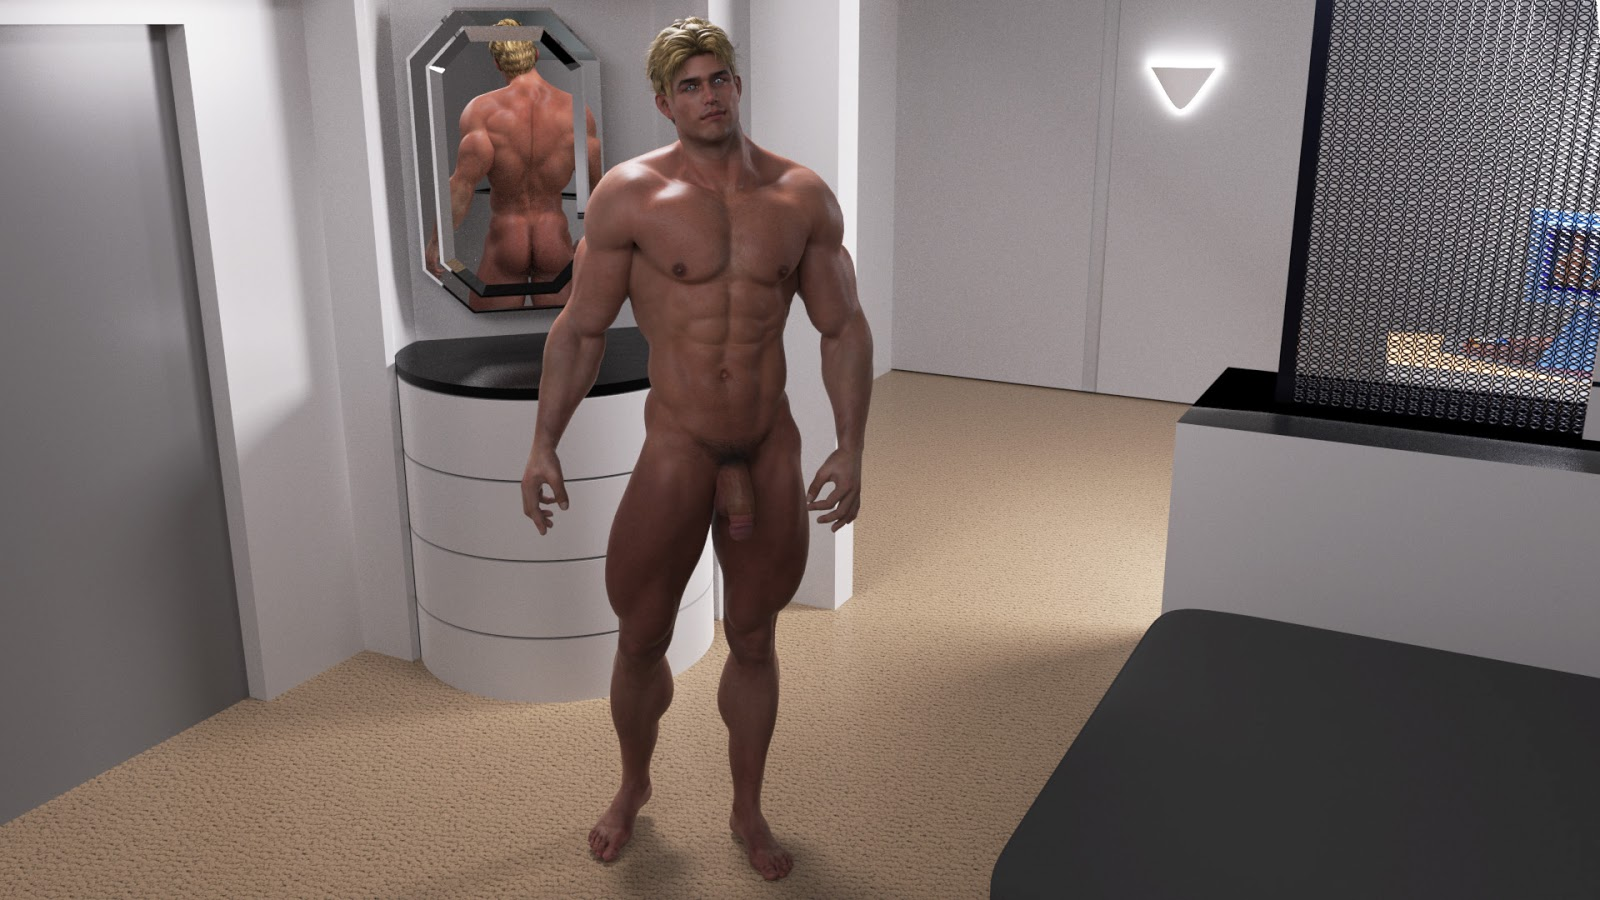 Daz3d male nude exploited pics